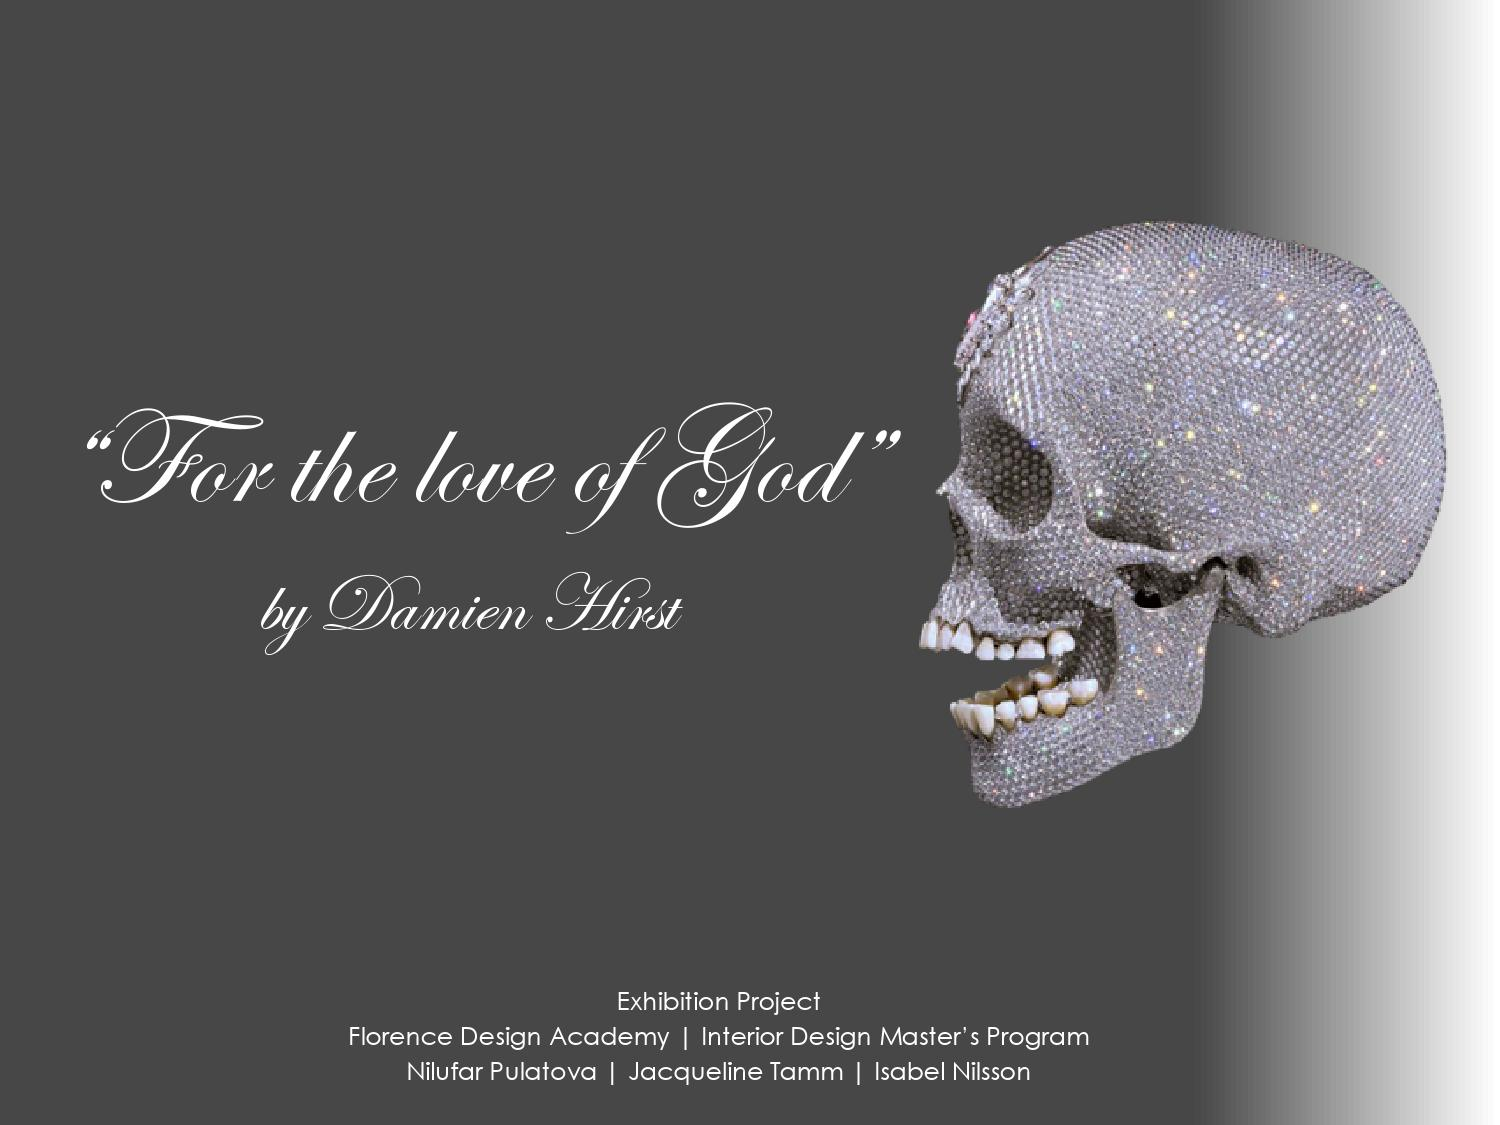 Exhibition-For the Love of God-Damien Hirst by Jacqueline Tamm Lundell -  issuu 4799ab9a52b